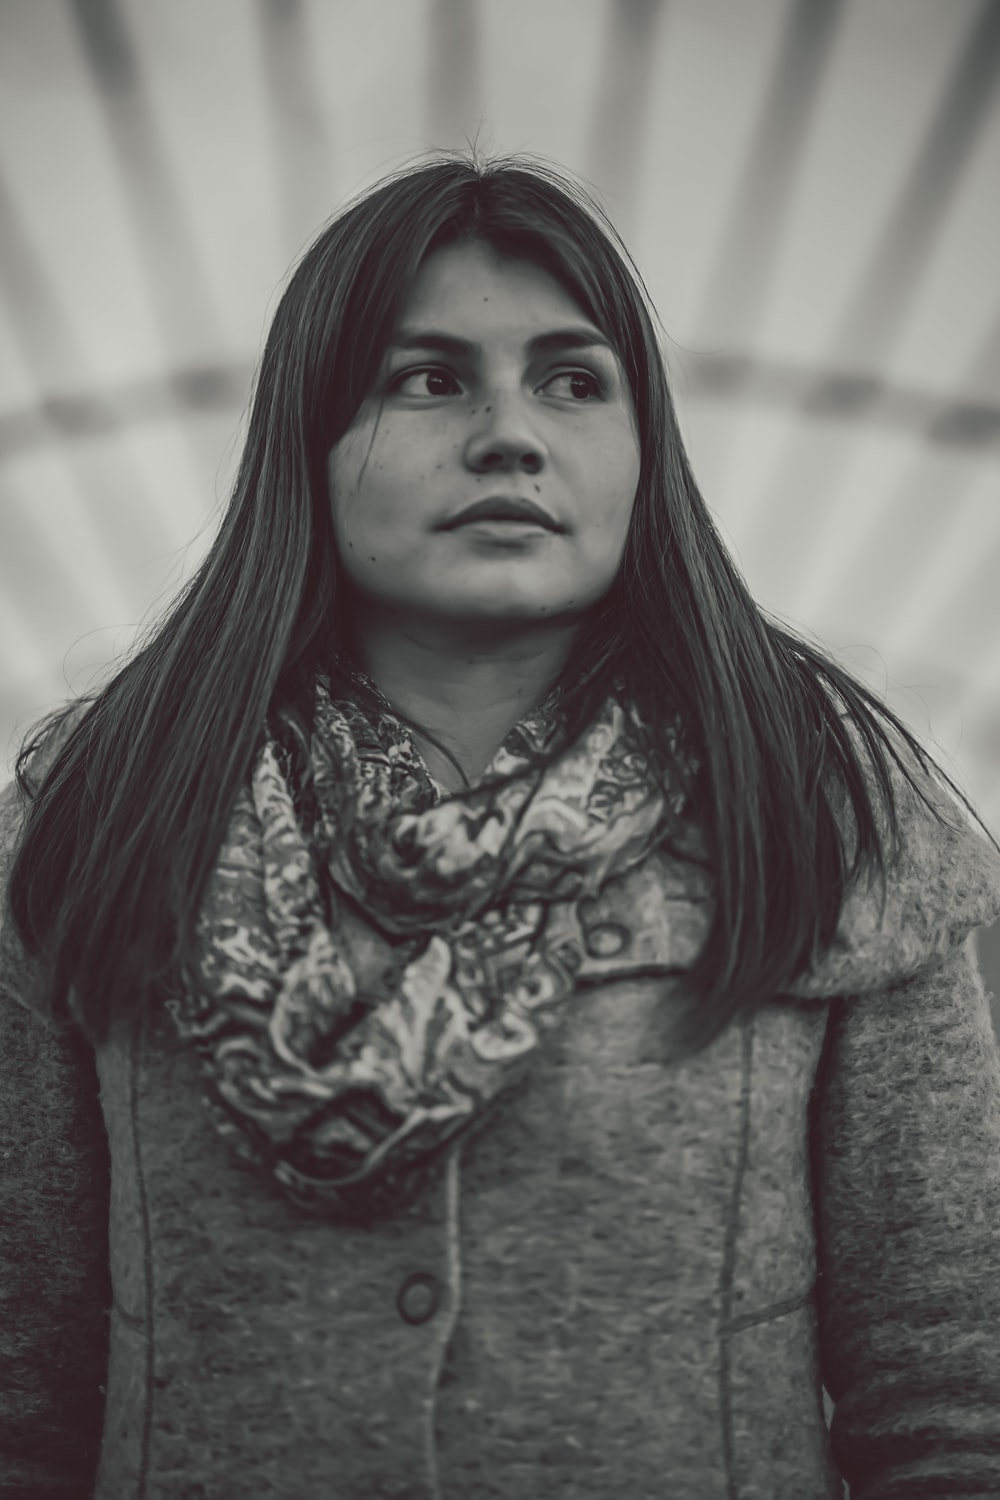 grayscale photo of woman wearing coat and scarf